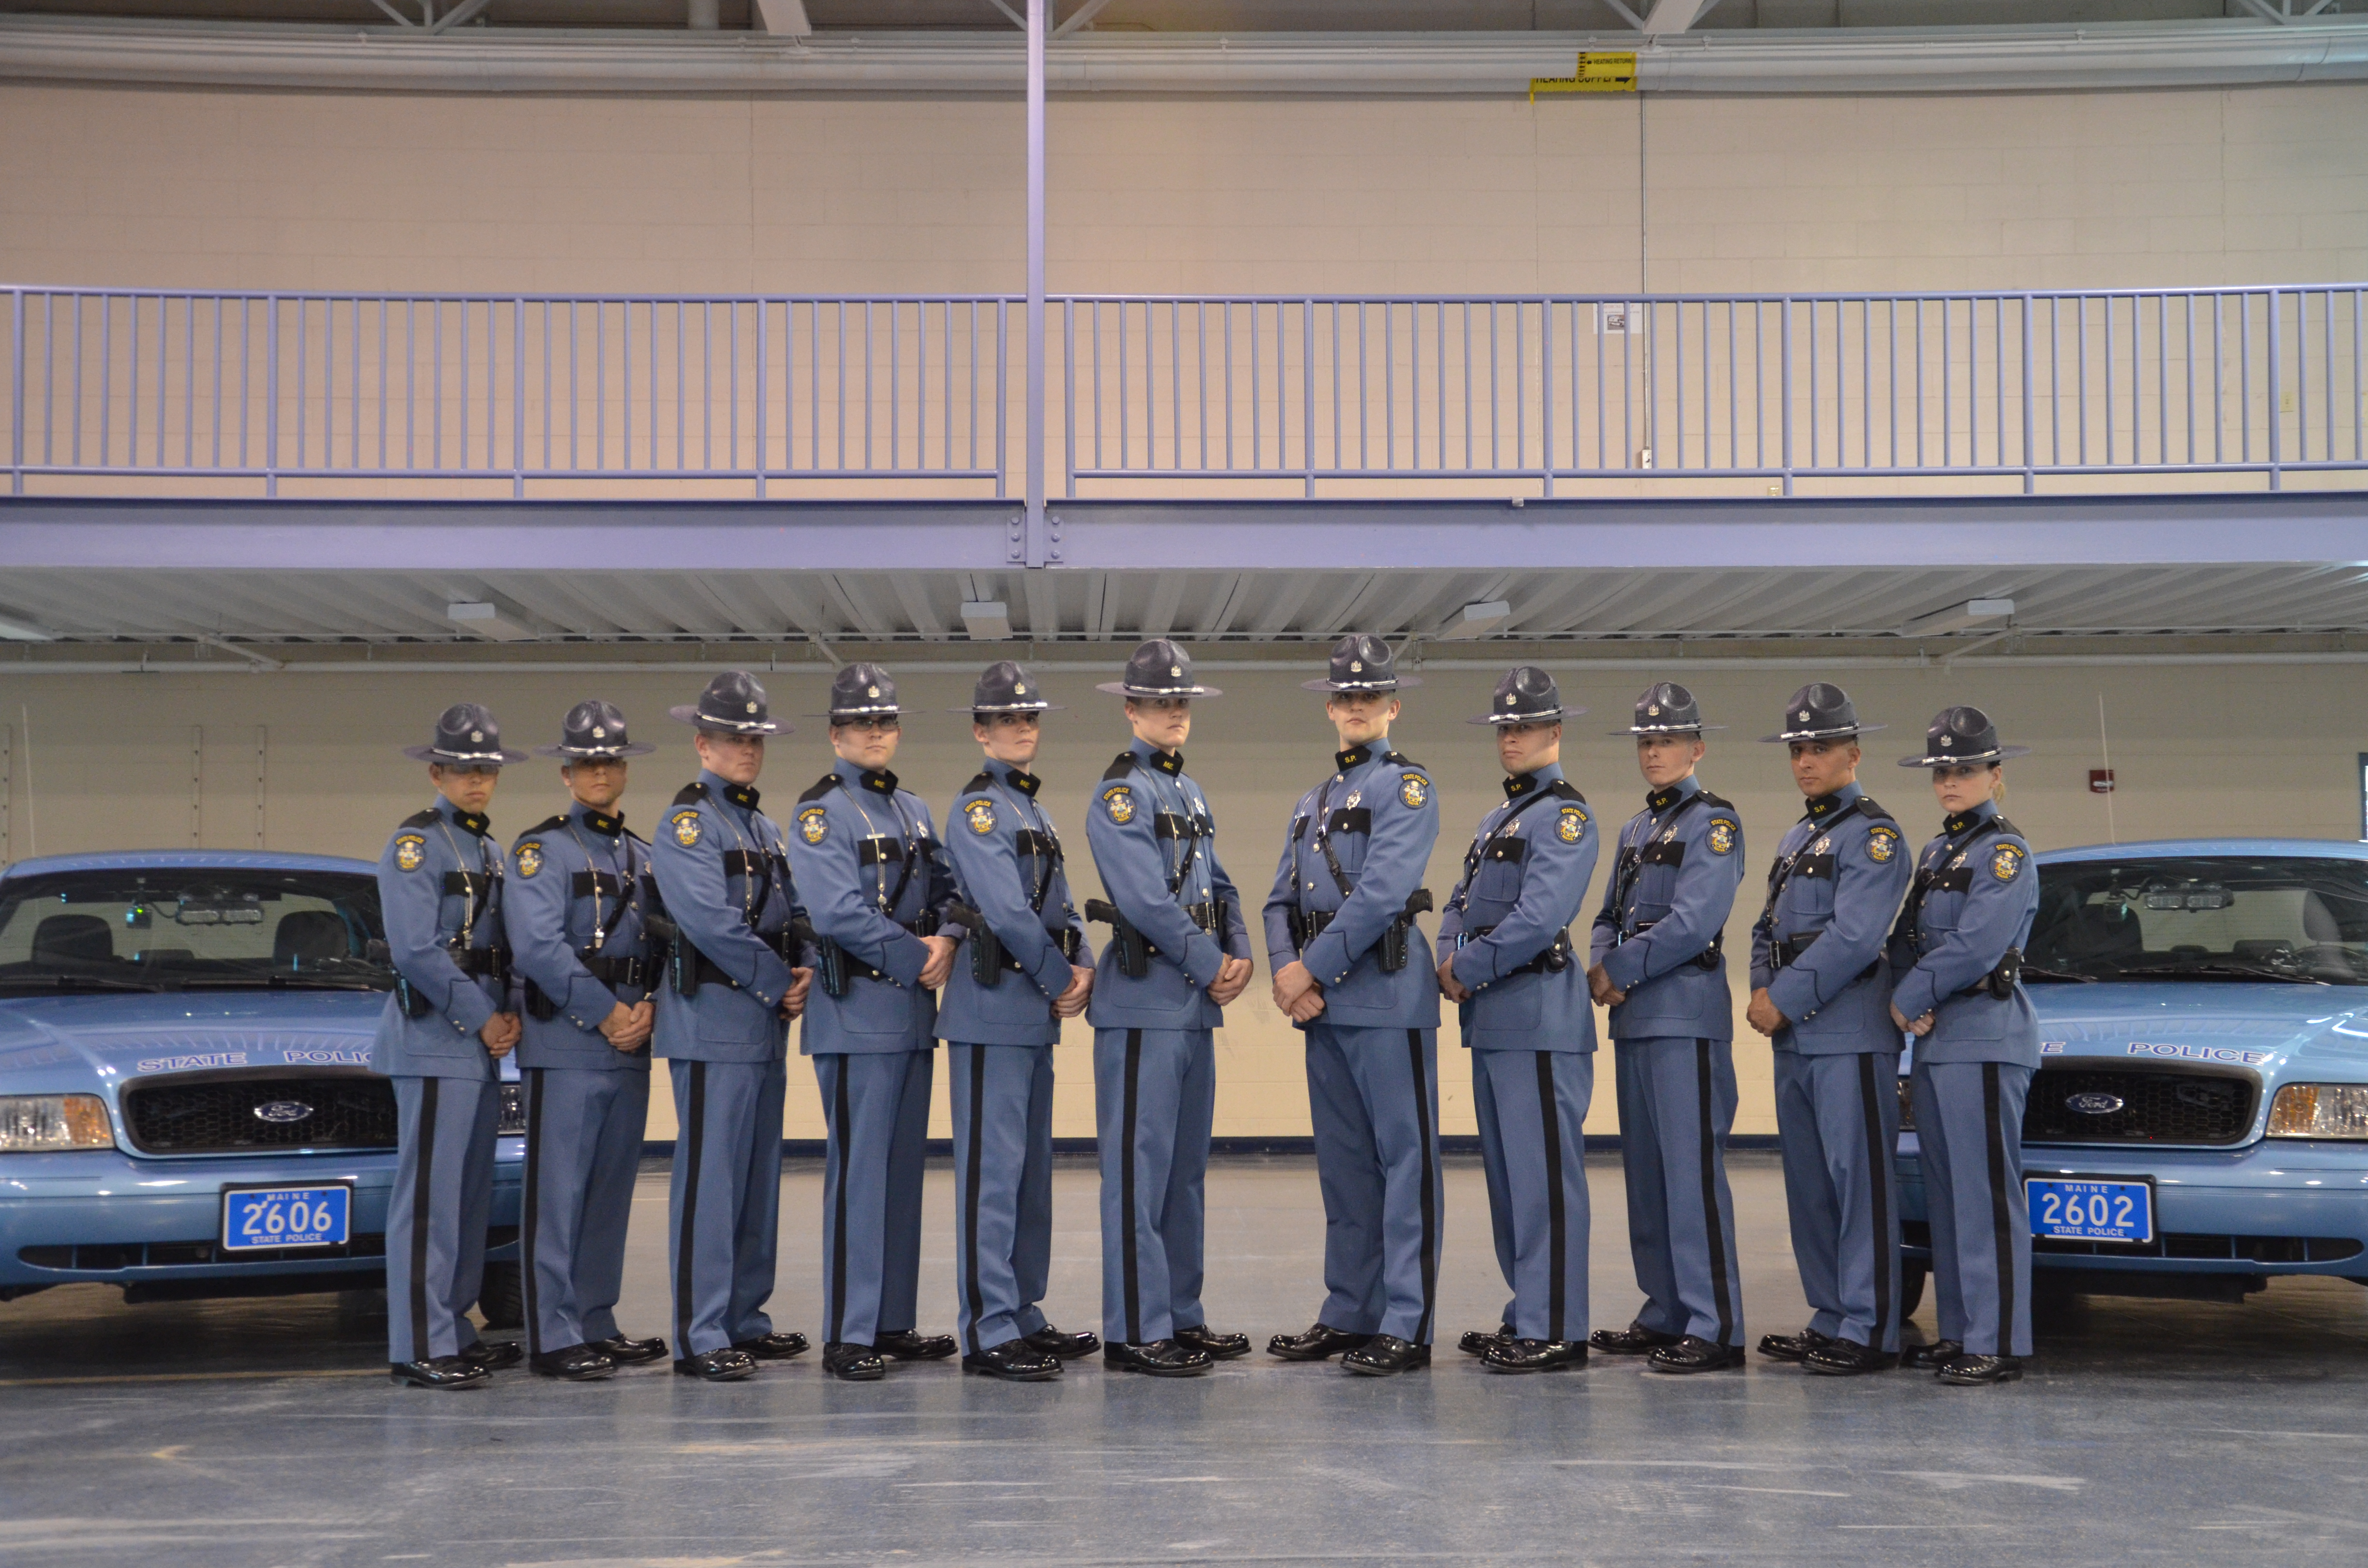 Maine State Troopers and cruisers